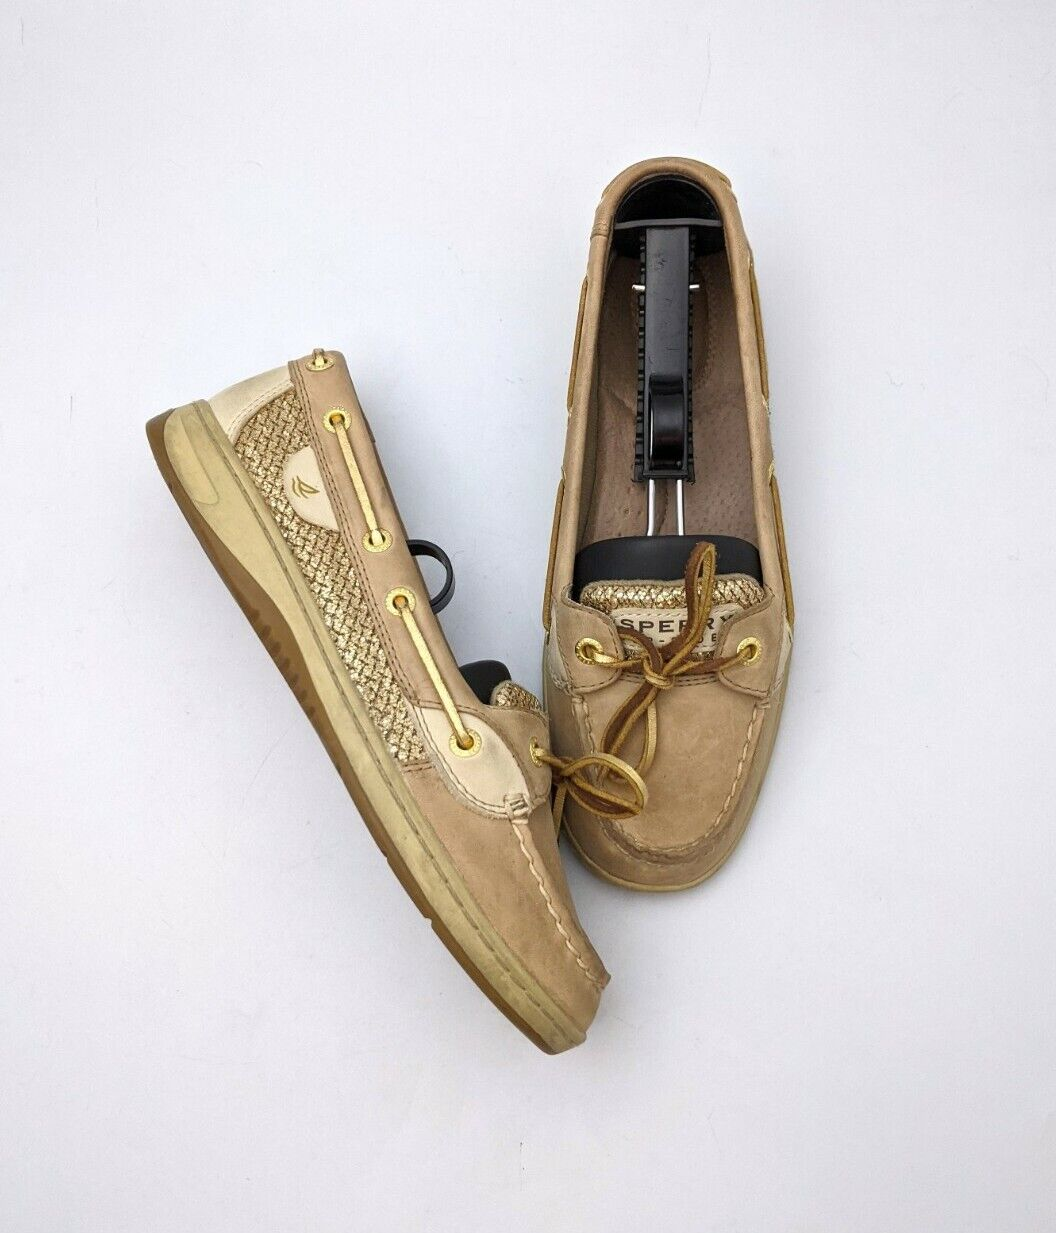 Sperry Top-Sider Angelfish Sparkle Leather Boat Shoe Women's 7.5M